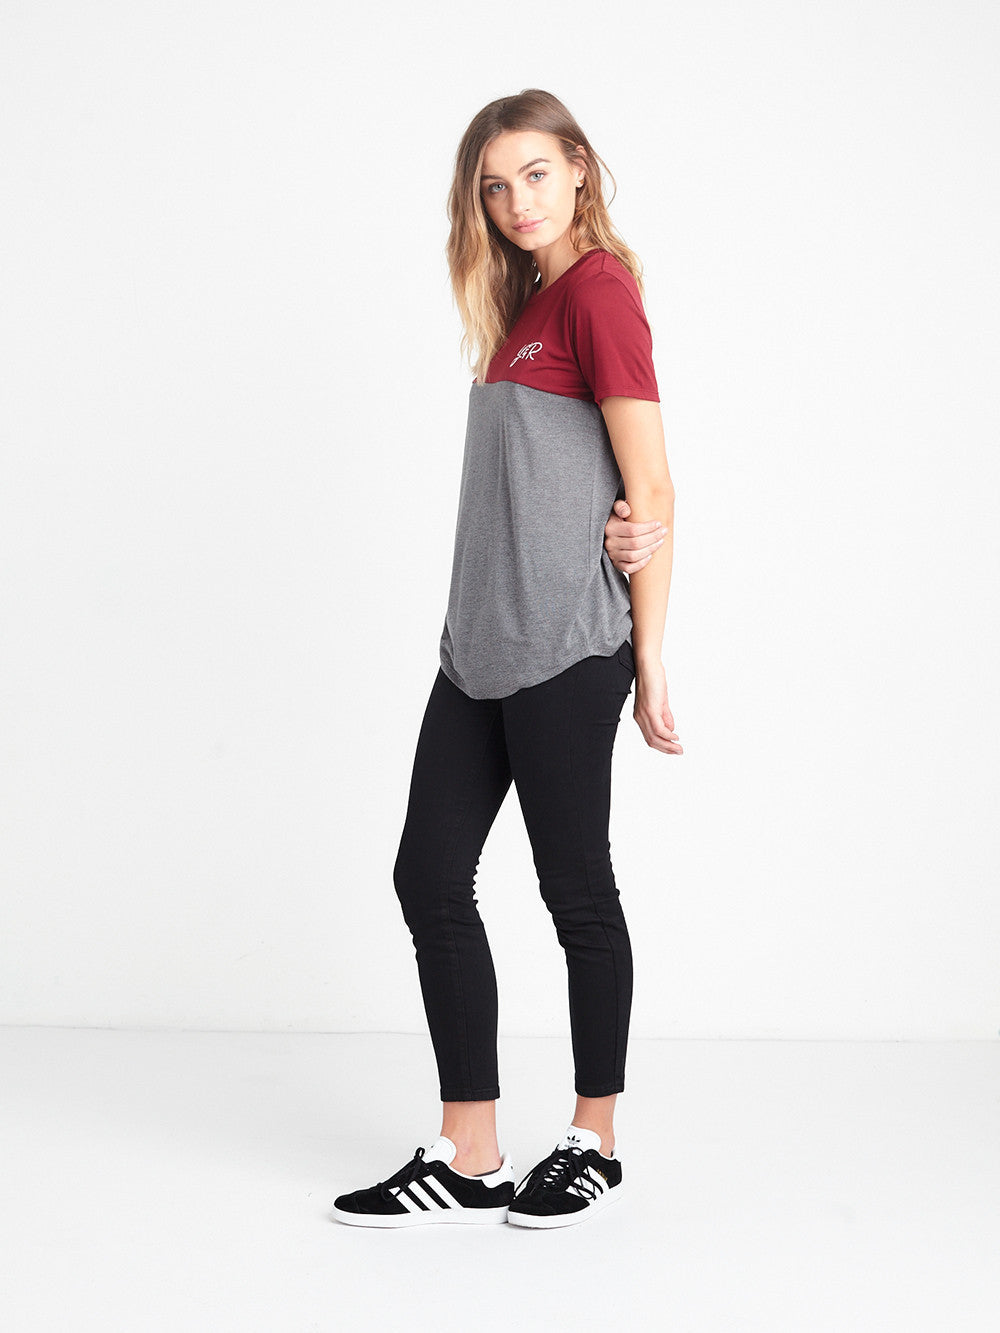 Reckless Girls Womens - Tops - Tees Initials Long Scoop Tee - Burgundy/Heather